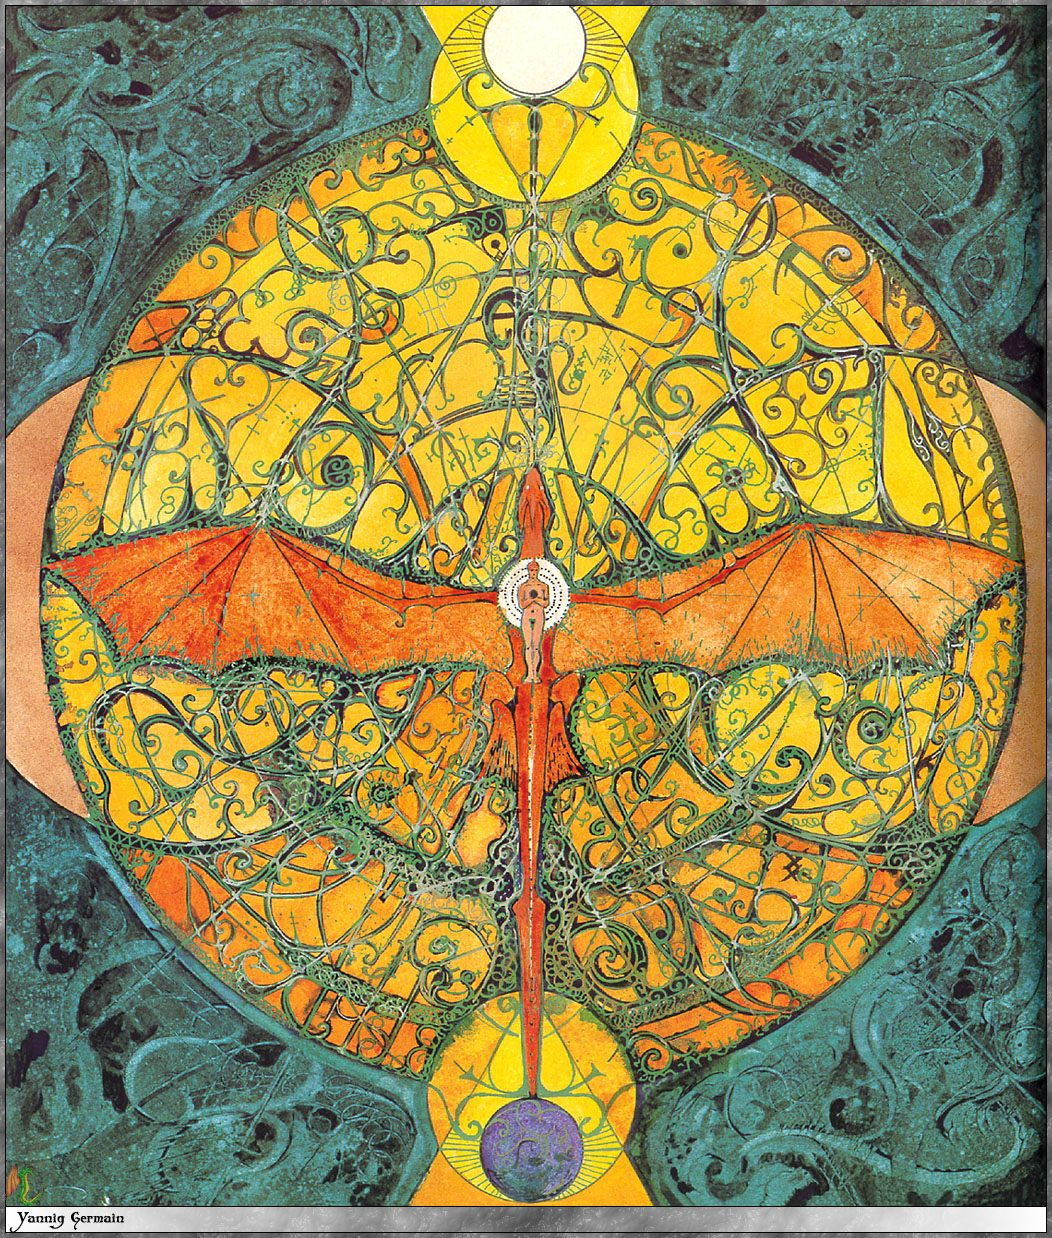 Janning Germain